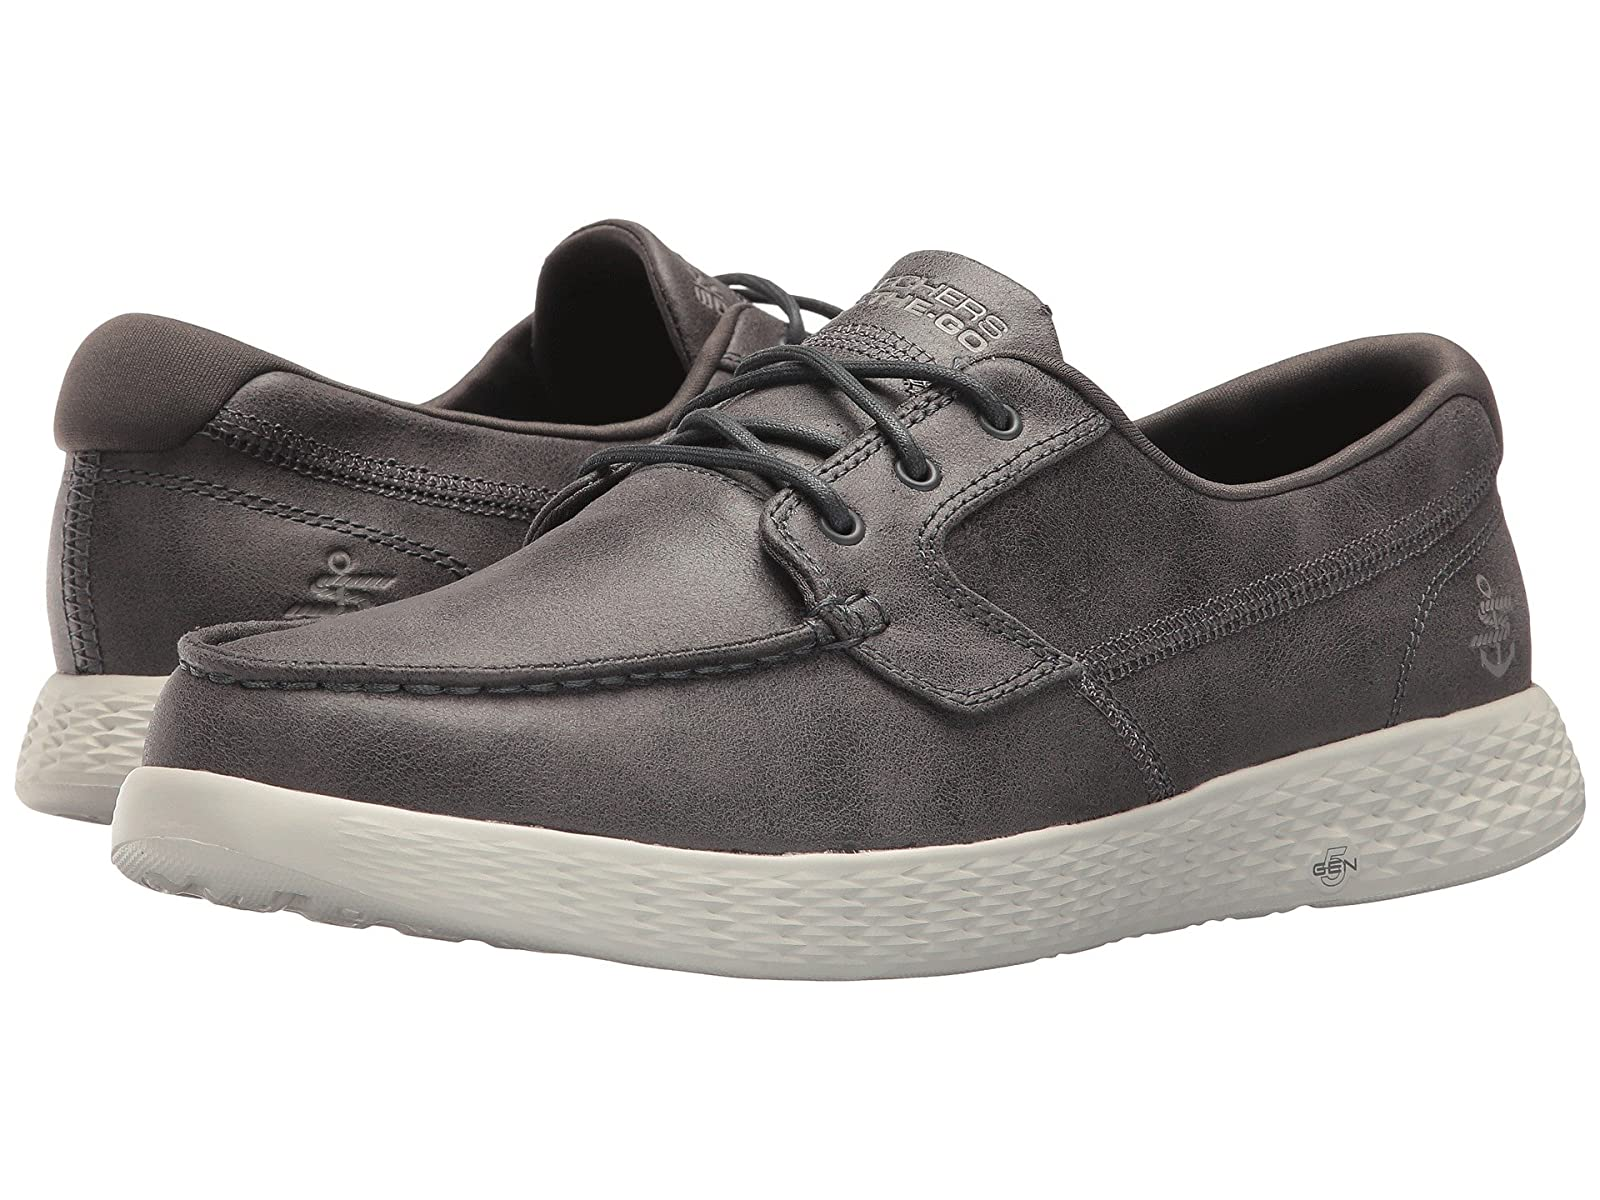 SKECHERS Performance On-The-Go Glide - HarborCheap and distinctive eye-catching shoes